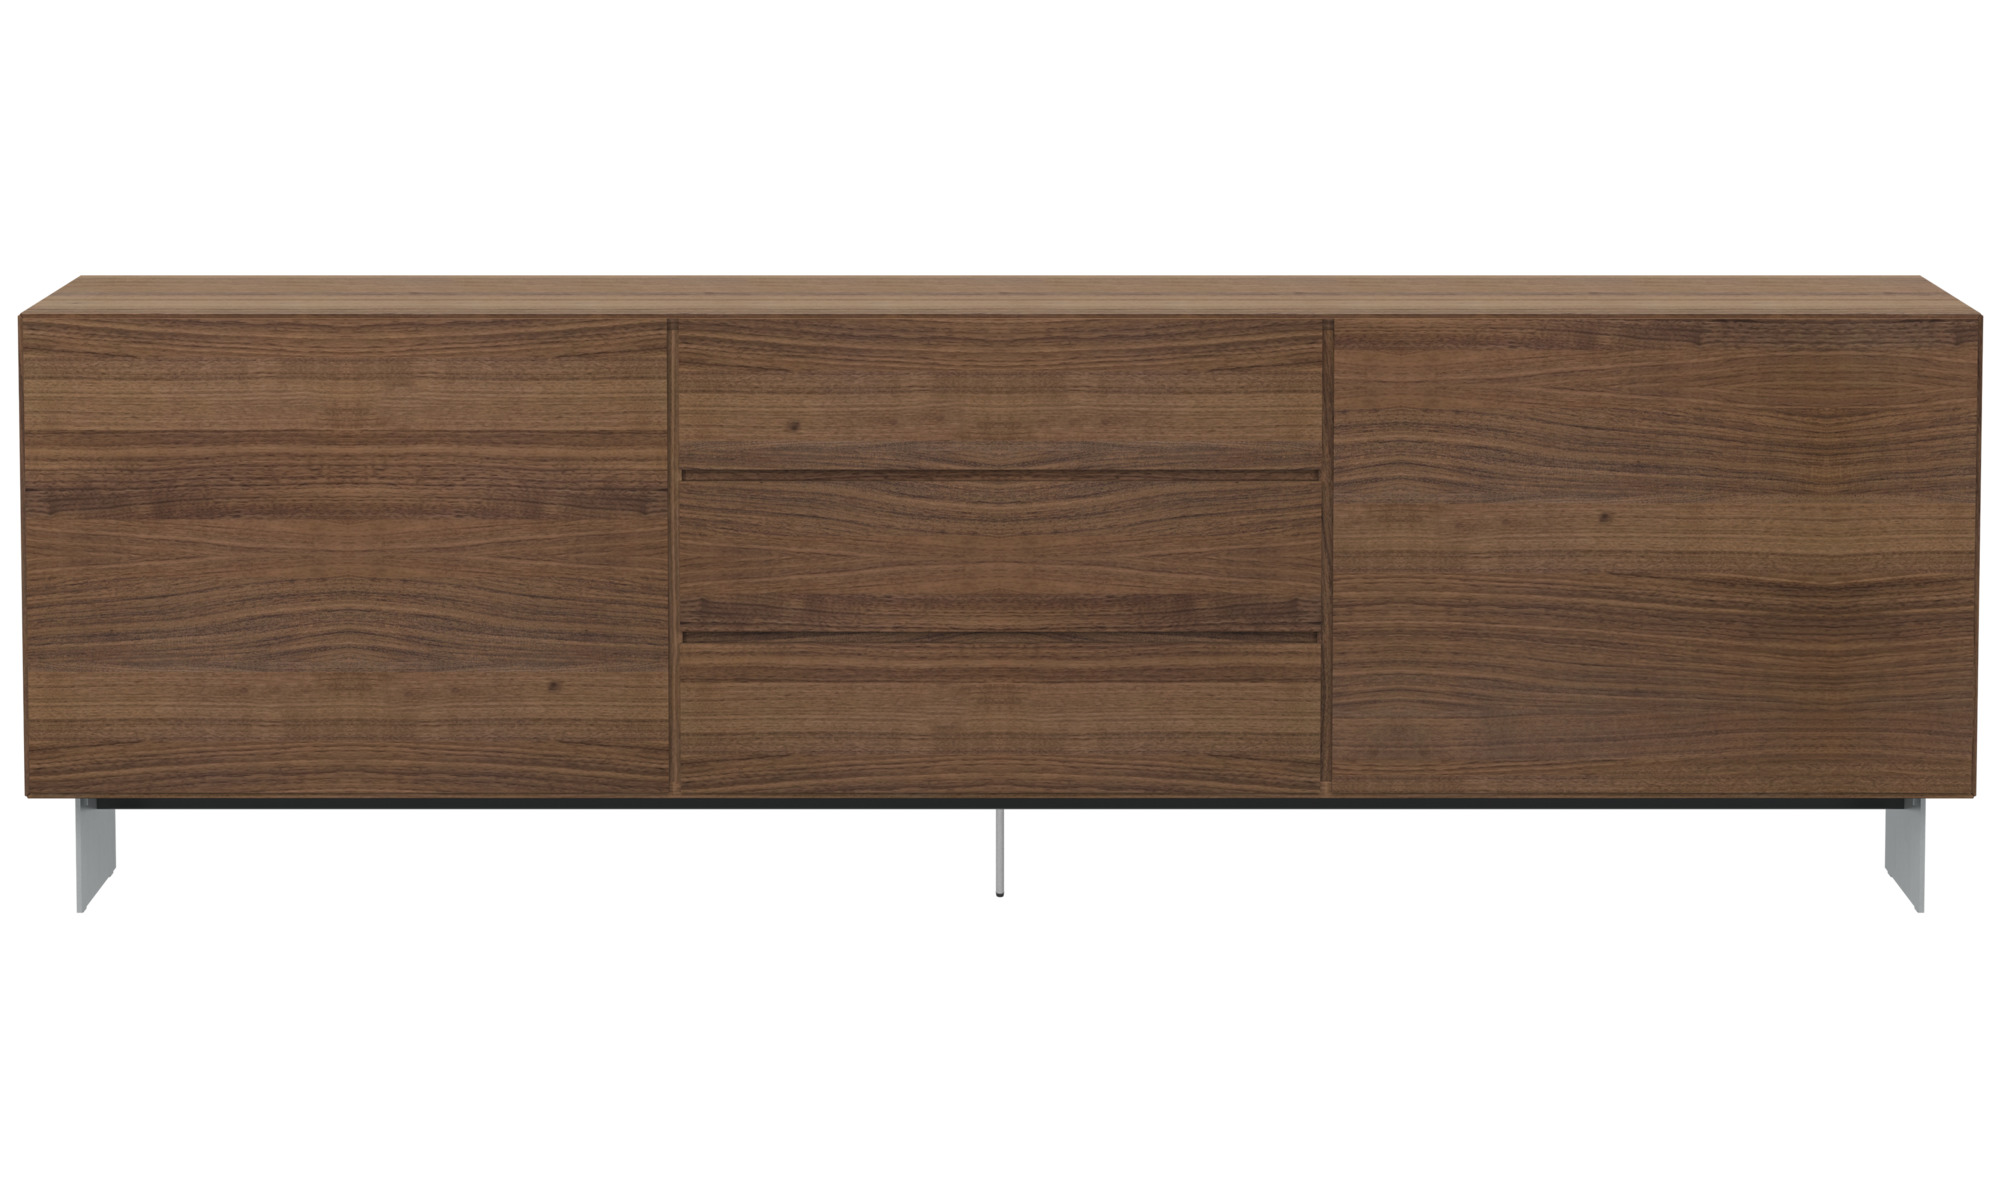 Sideboards Lugano Sideboard Braun Walnuss Interior Sideboards Lugano Sideboard Boconcept